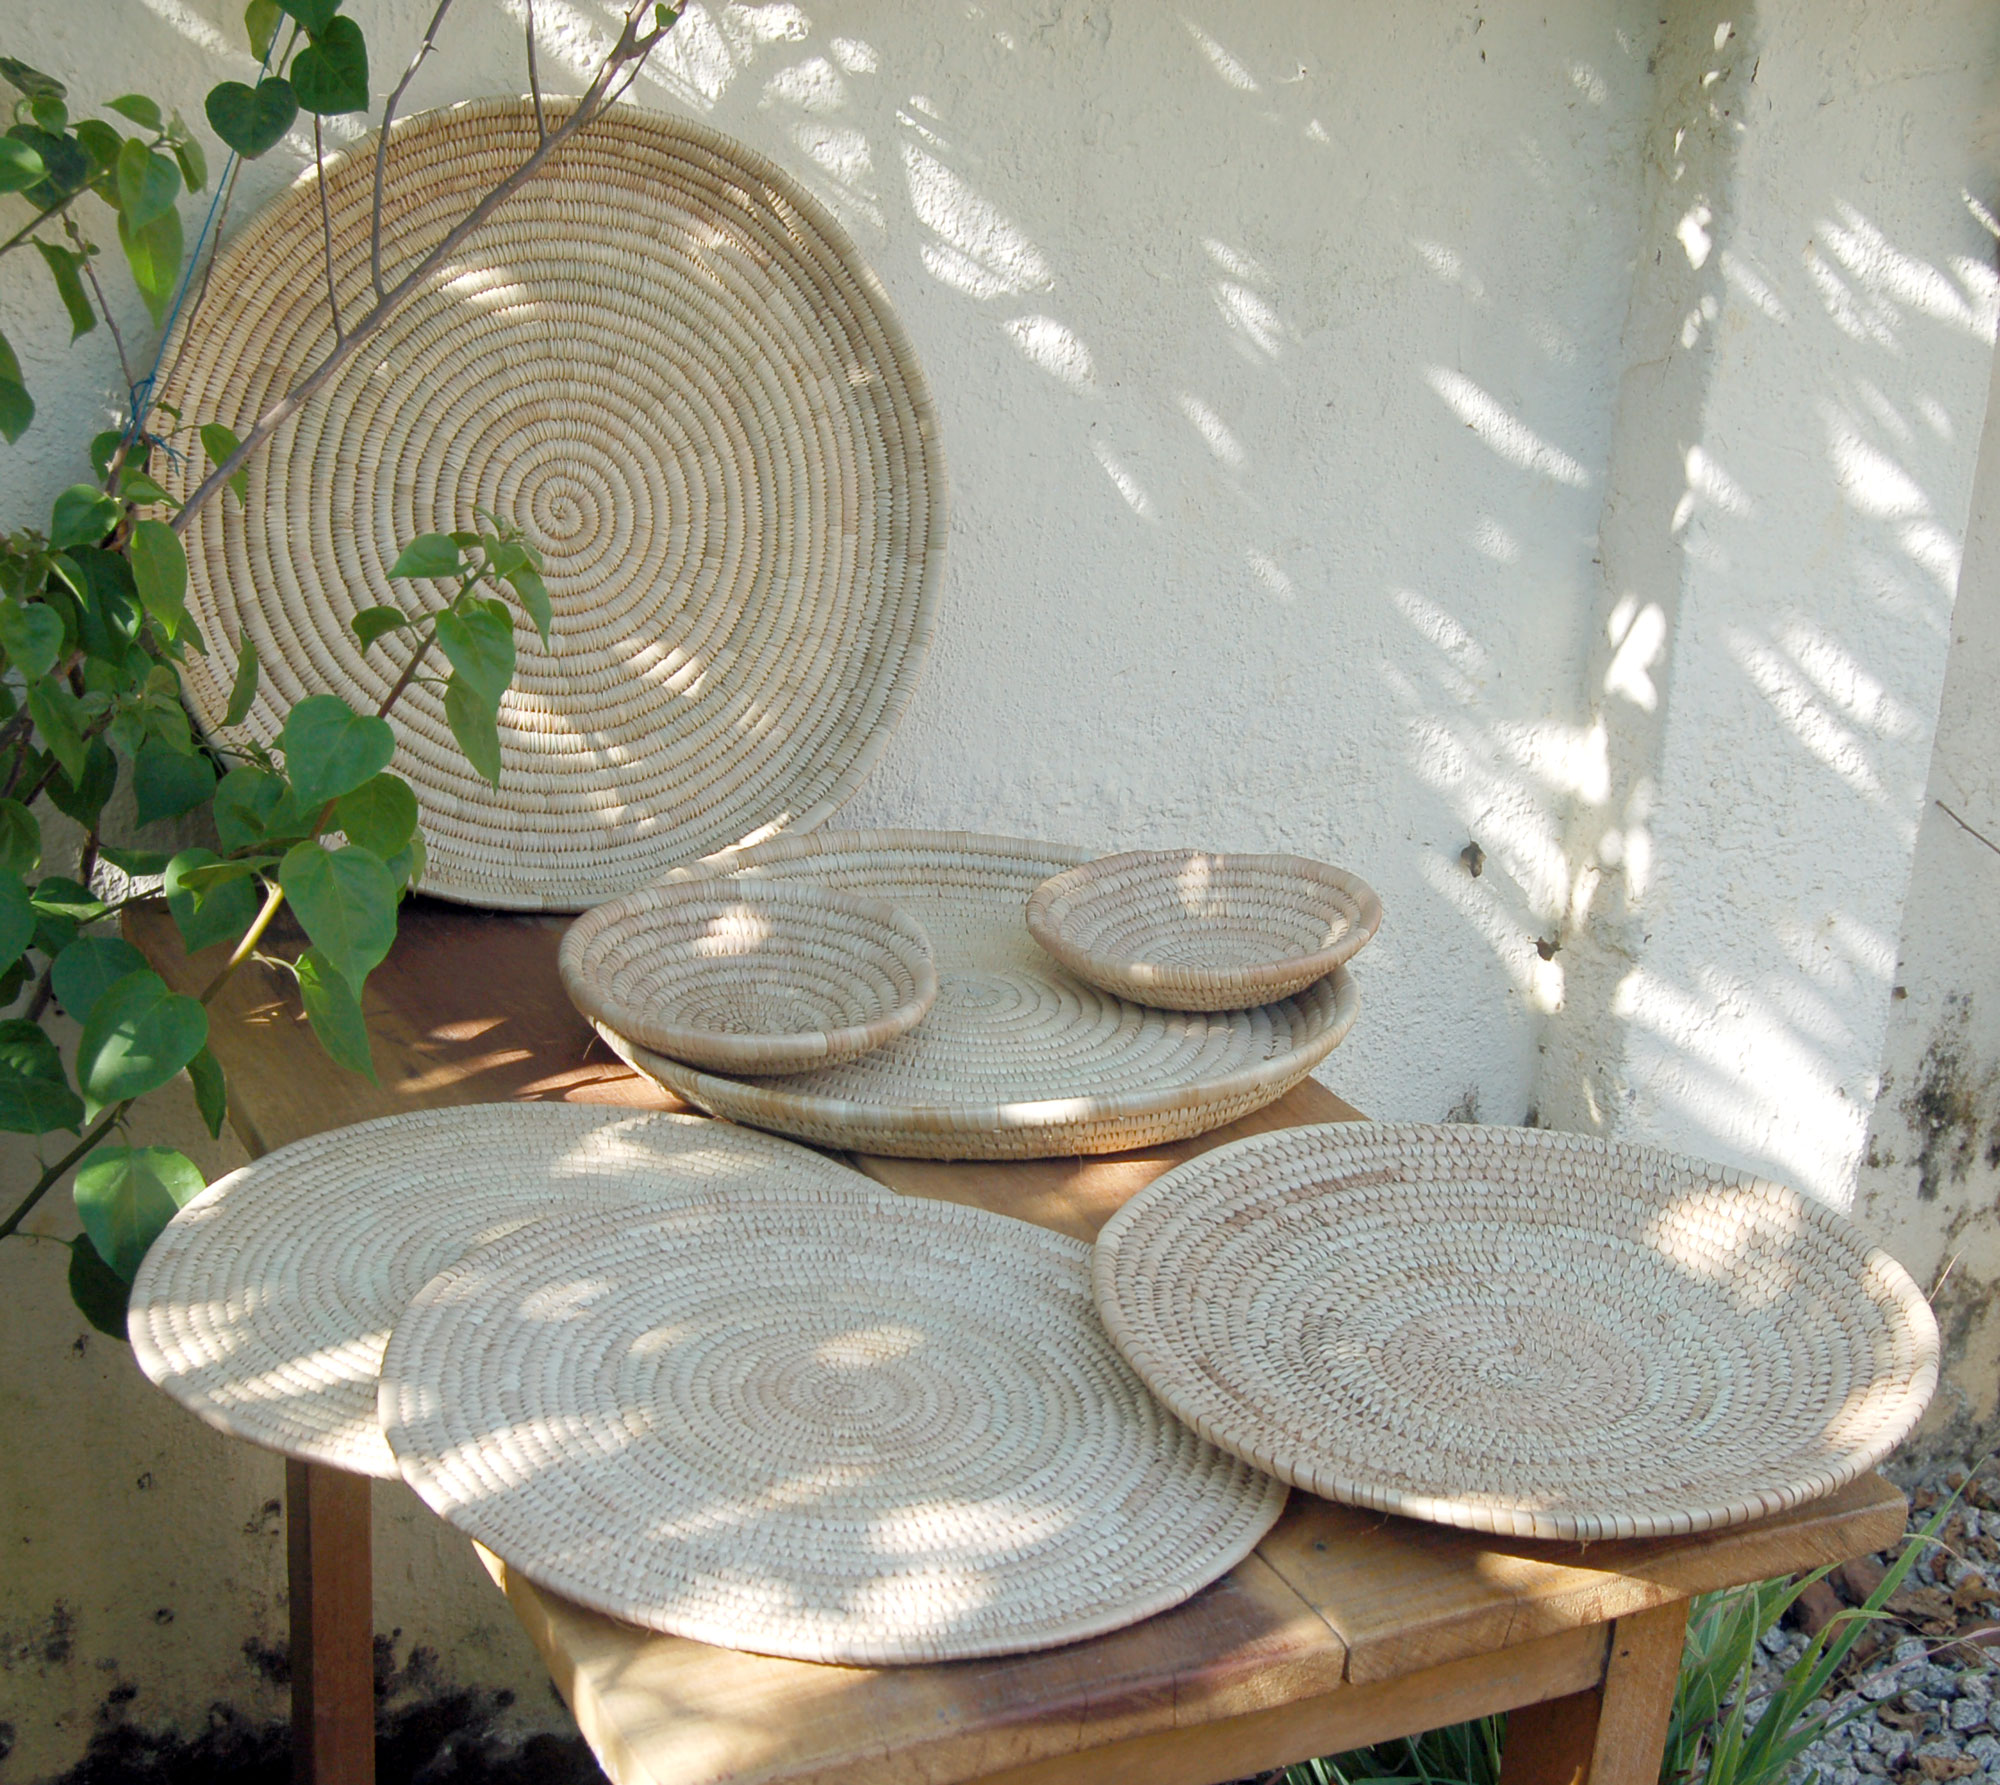 7-Piece Handwoven Serving & Entertaining Tabletop Basket Set – Neutral